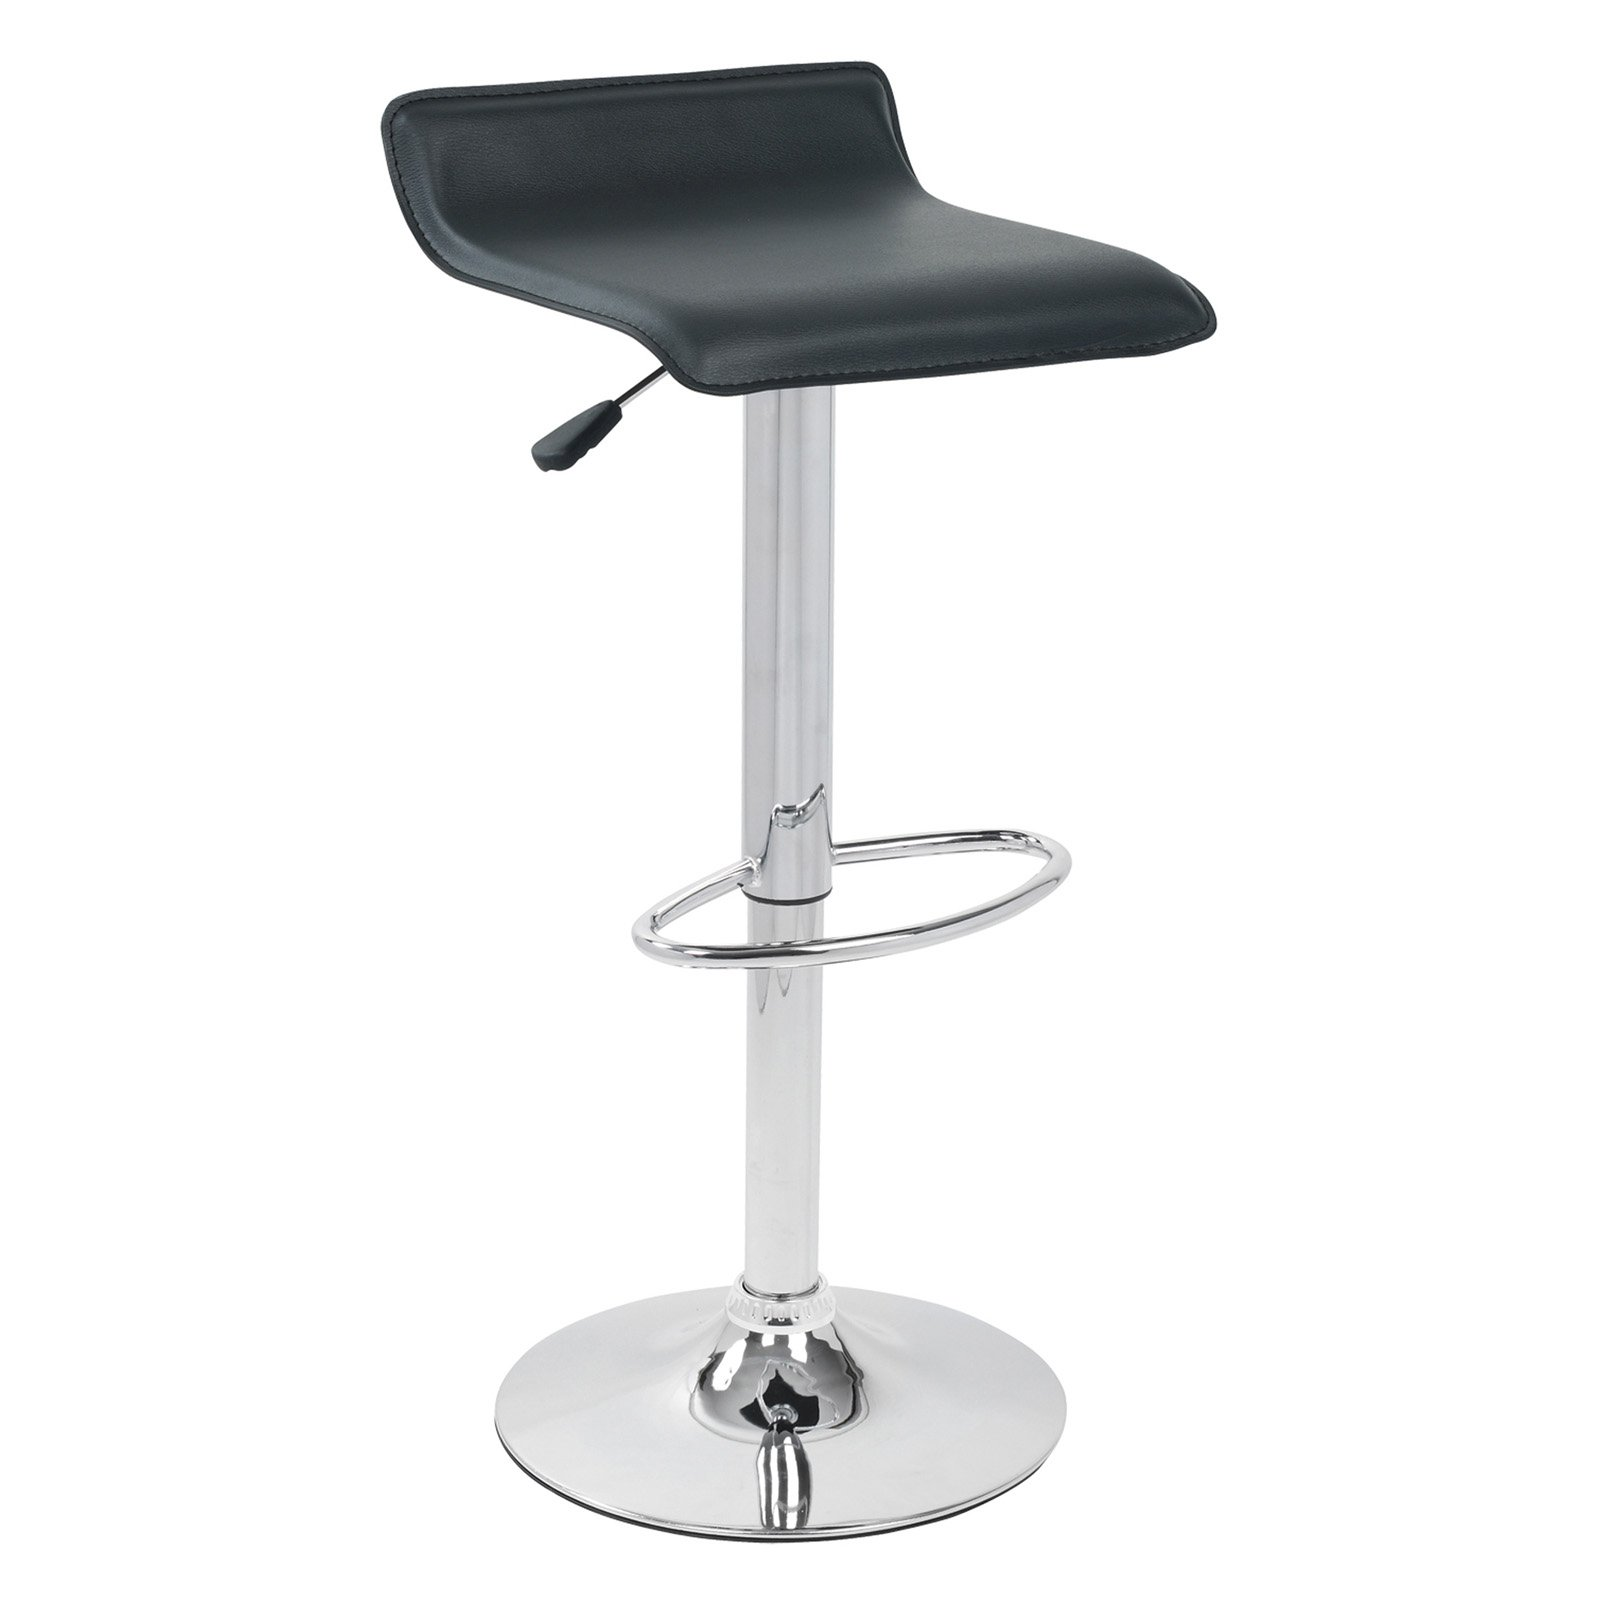 Lumisource Ale Adjustable Height Bar Stool by LumiSource Inc